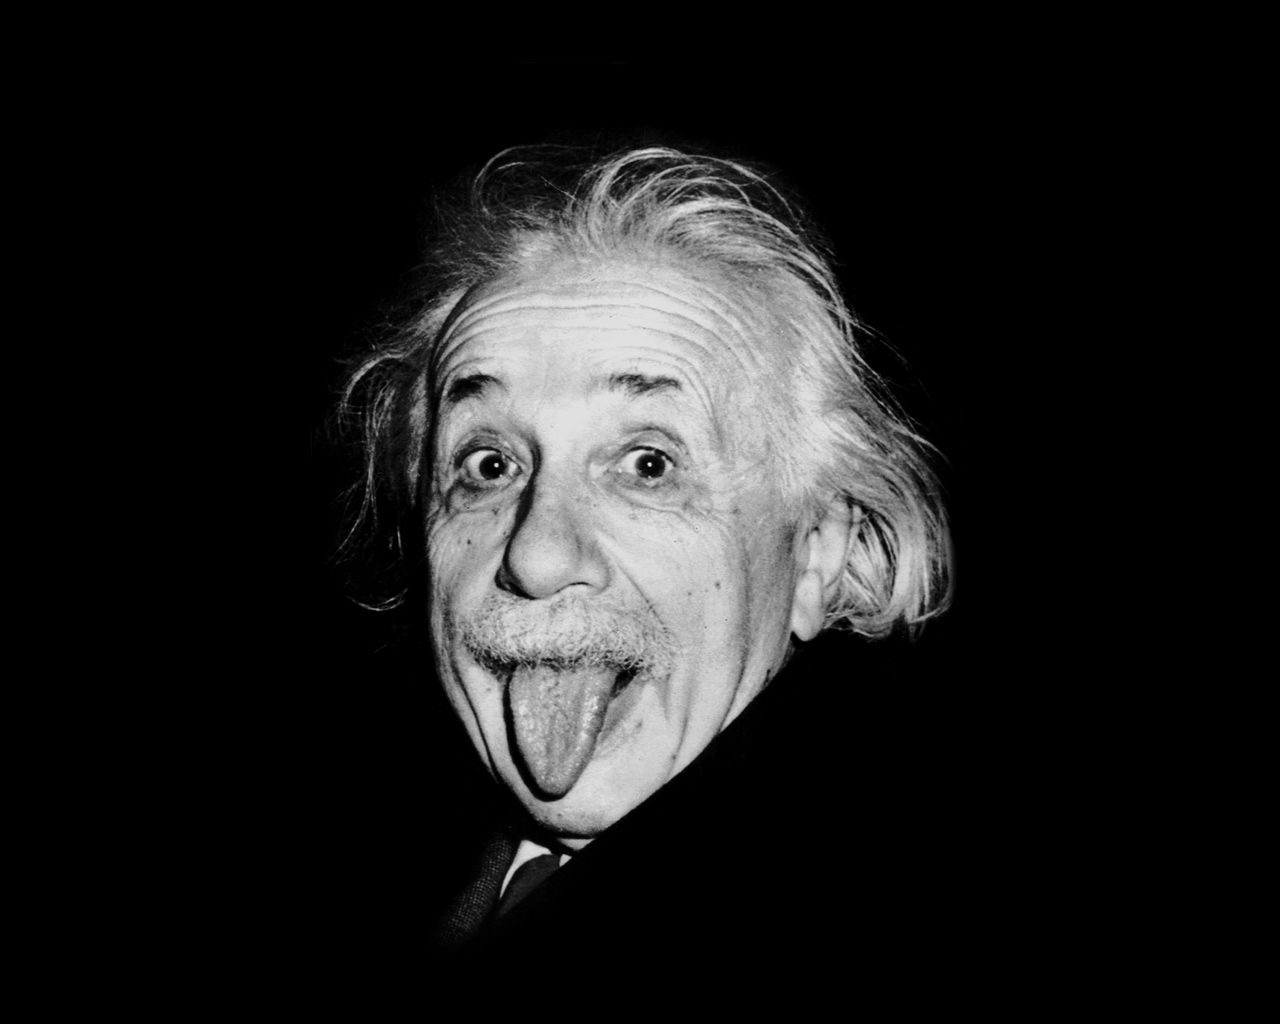 Einstein Is A Favorite Model For Depictions Of Mad